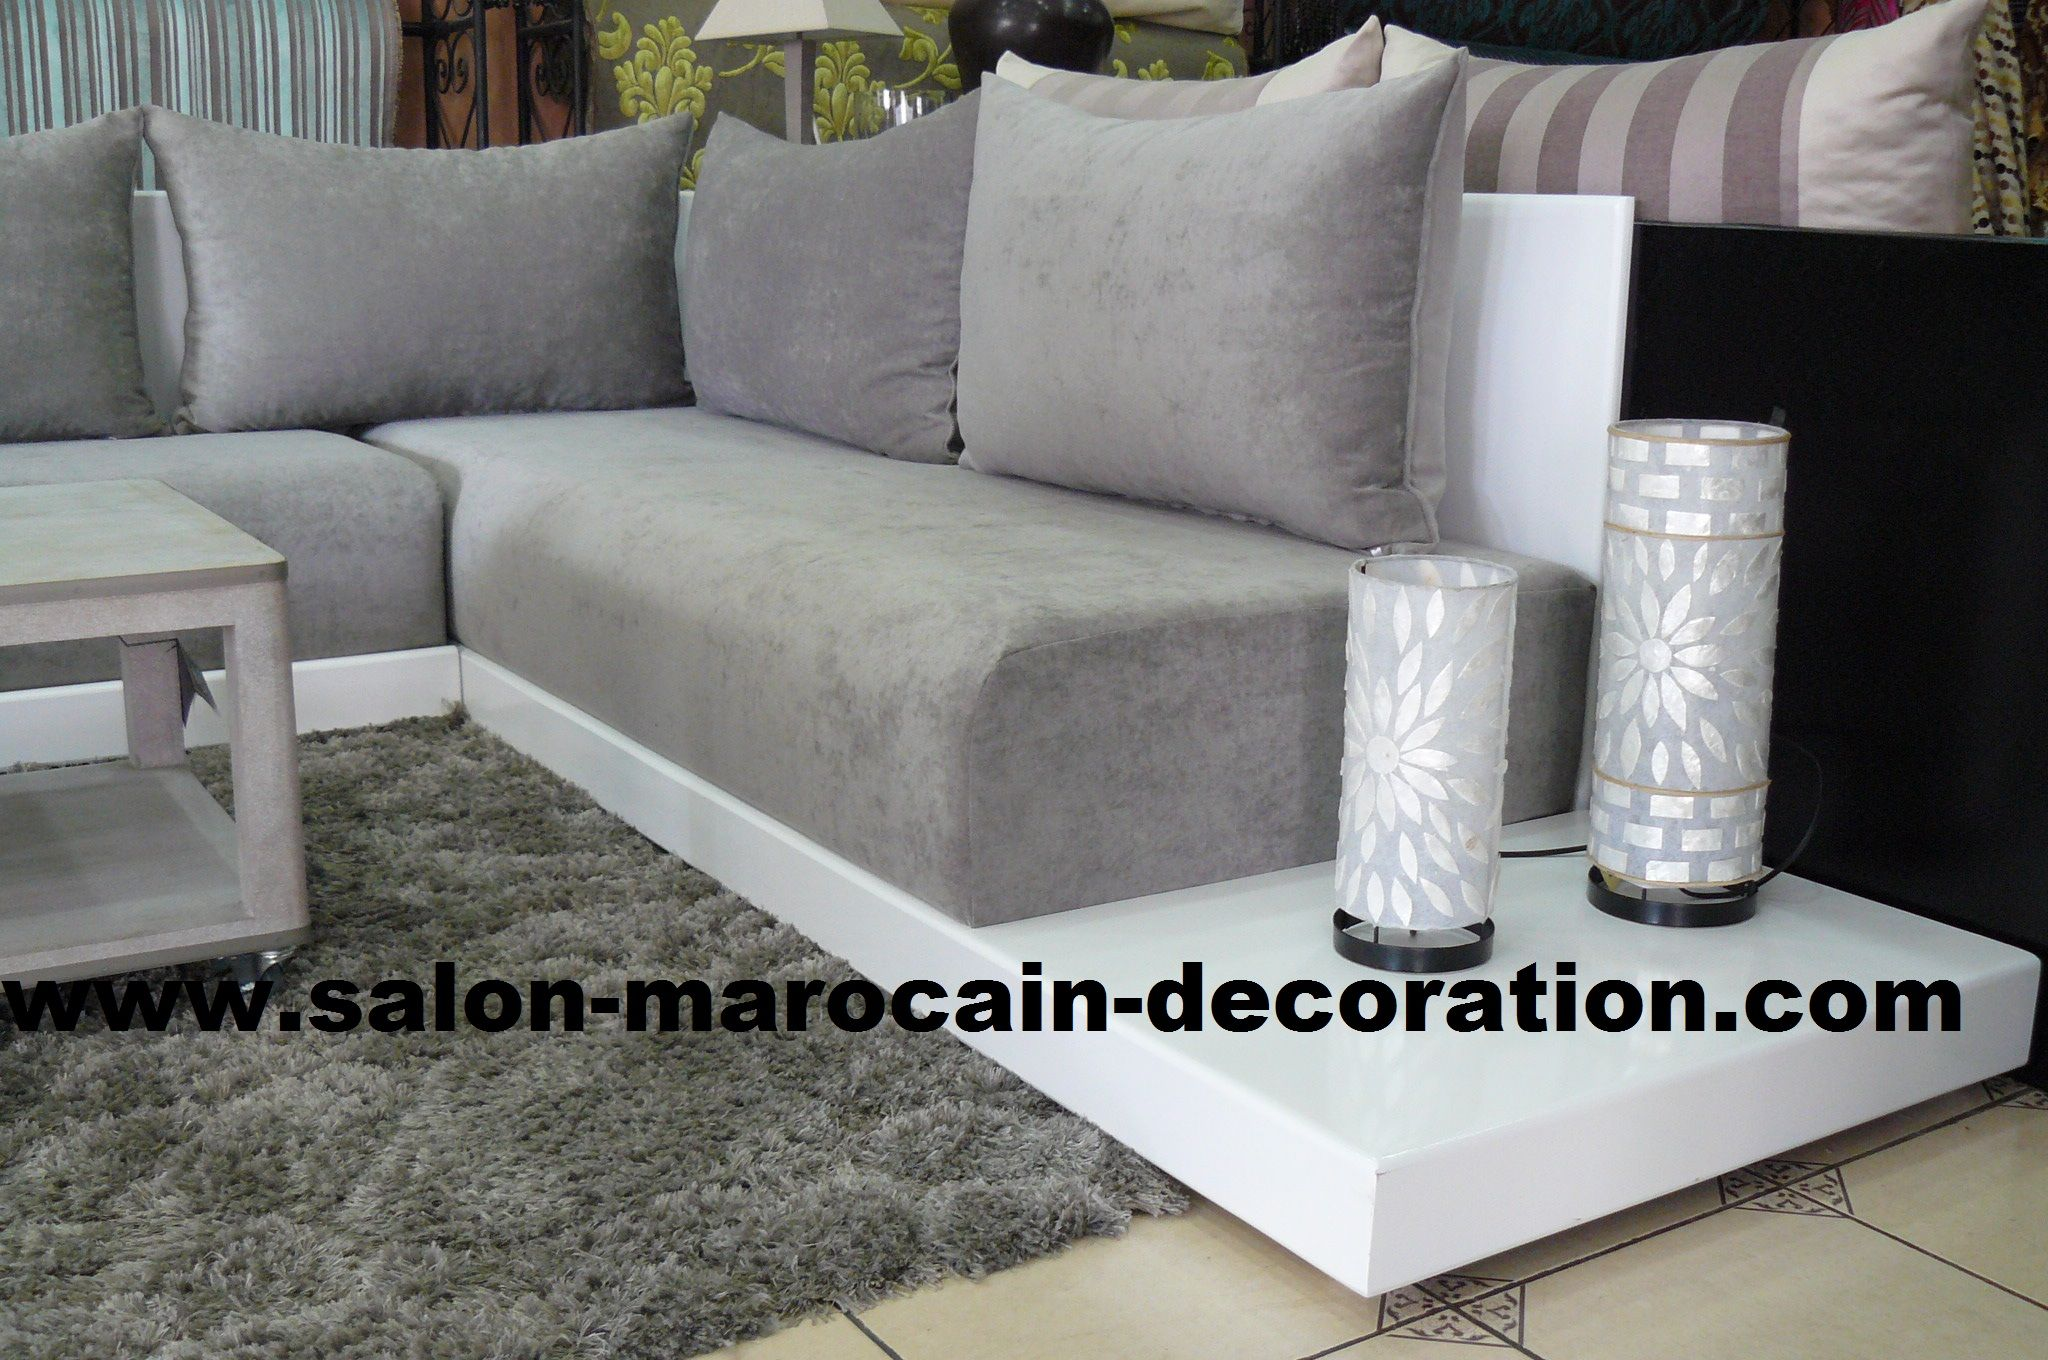 les 25 meilleures id es de la cat gorie sedari marocain sur pinterest salons marocains. Black Bedroom Furniture Sets. Home Design Ideas